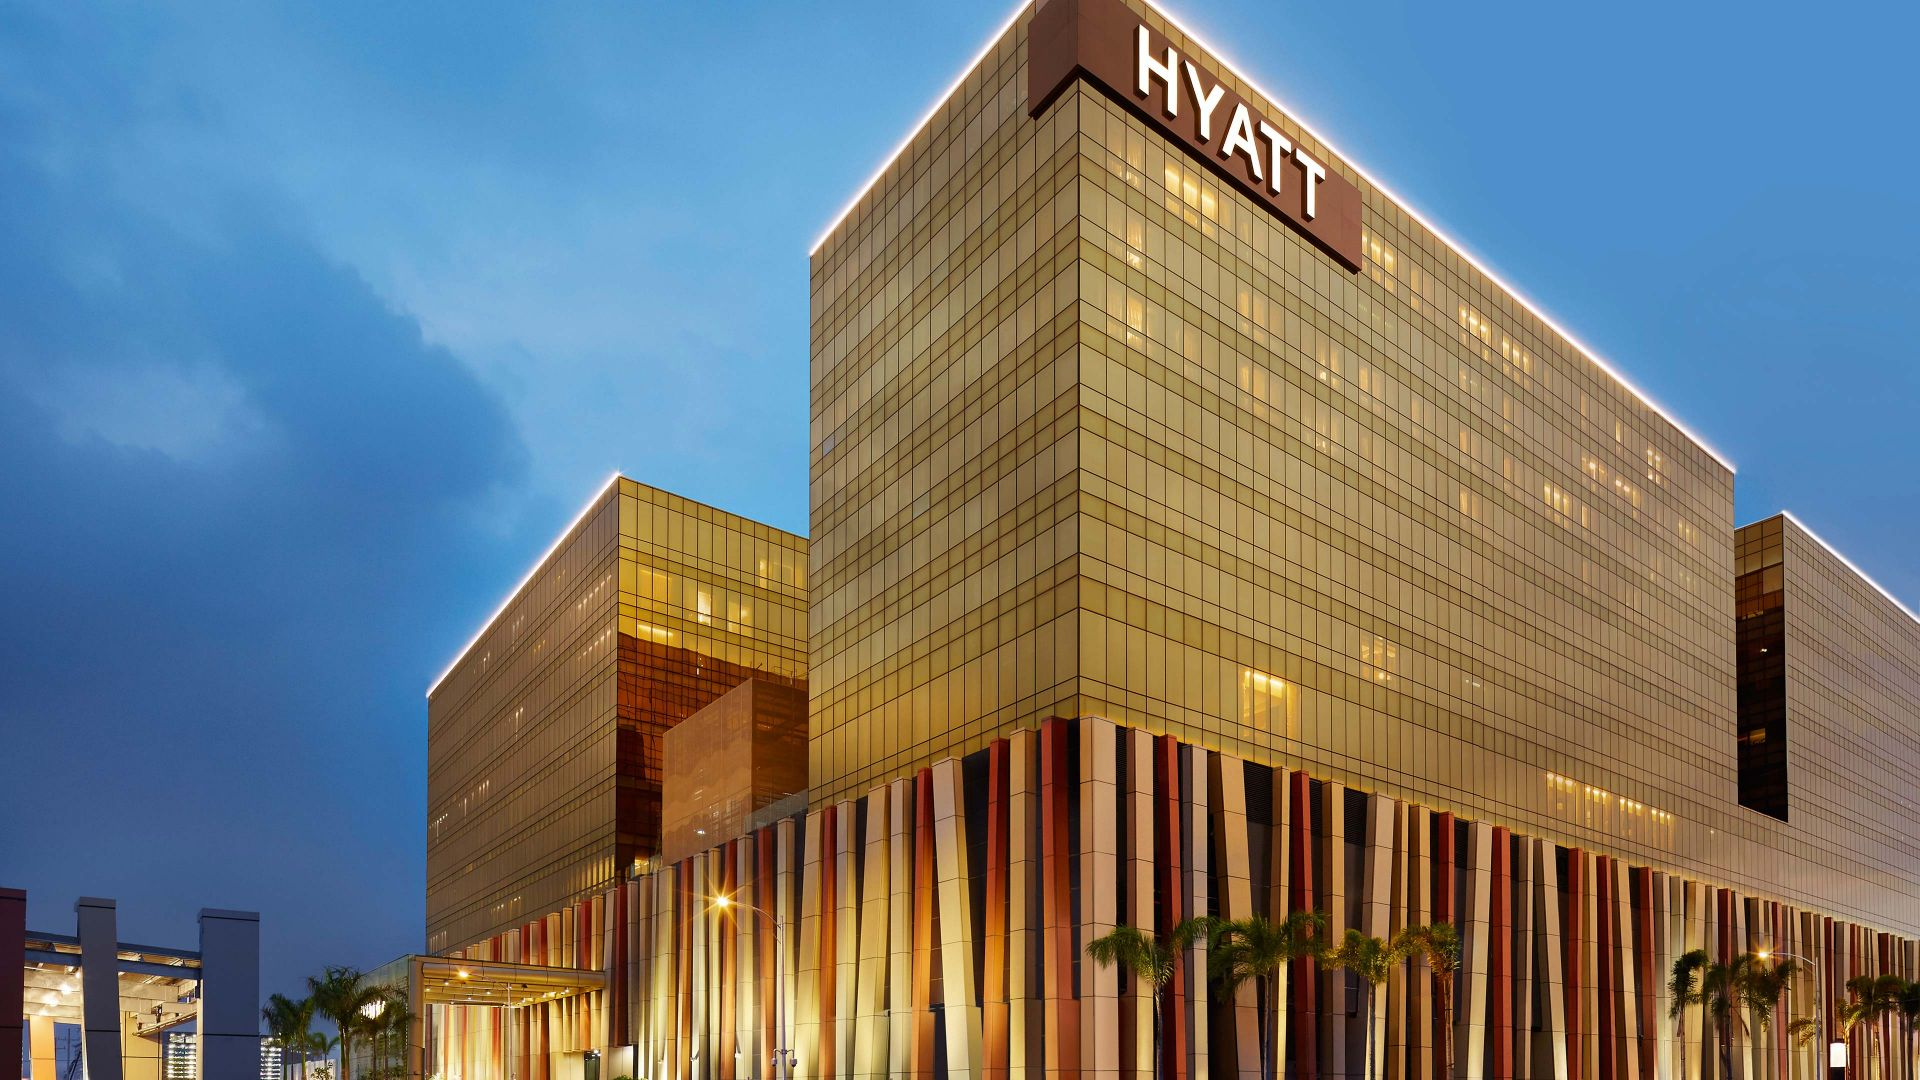 Hyatt City of Dreams Manlia Exterior